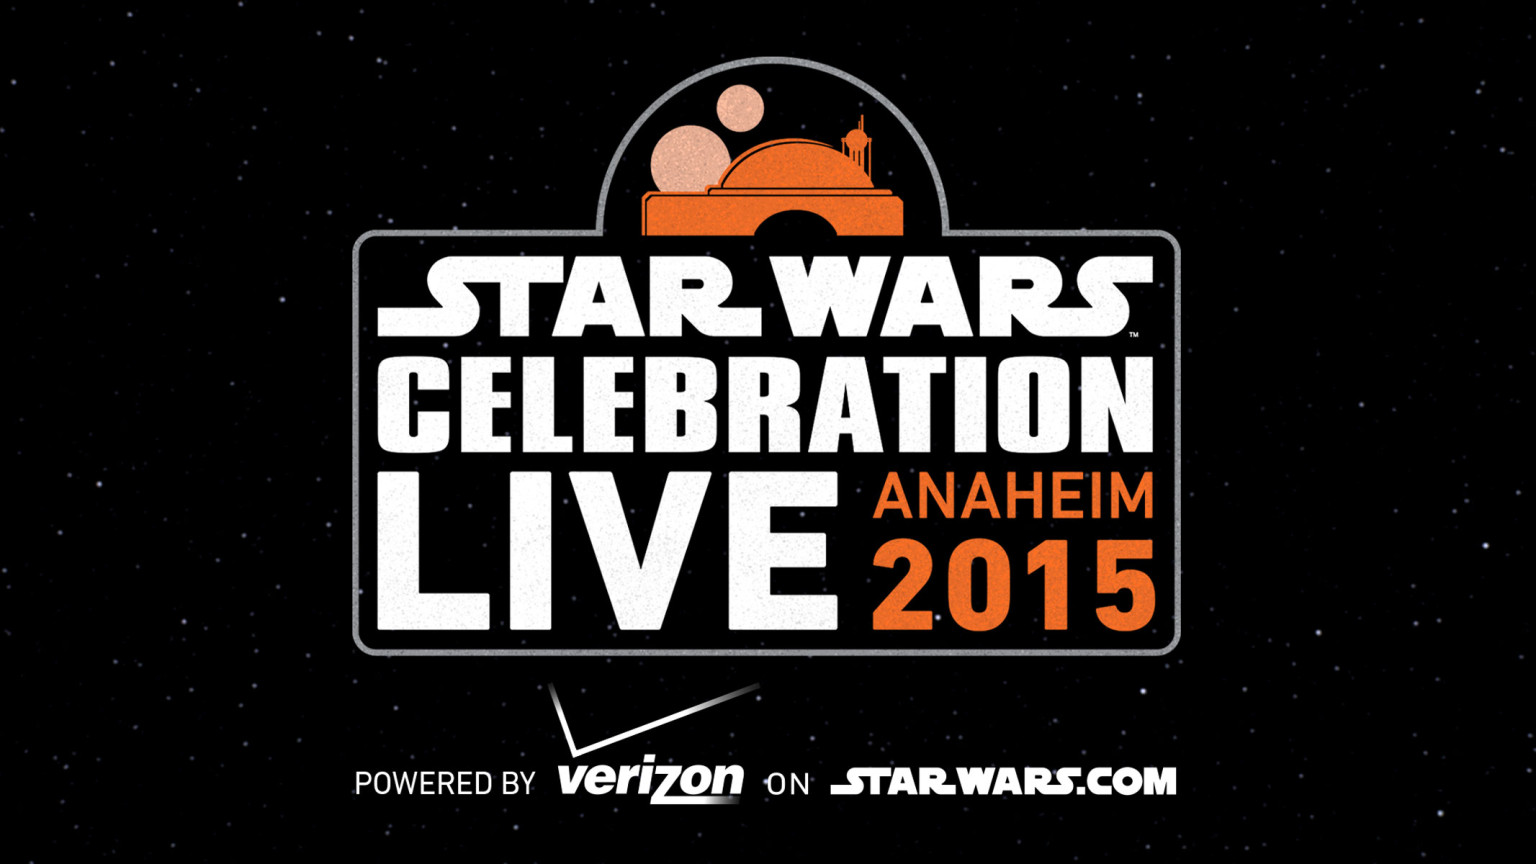 Star Wars Celebration Anaheim Live